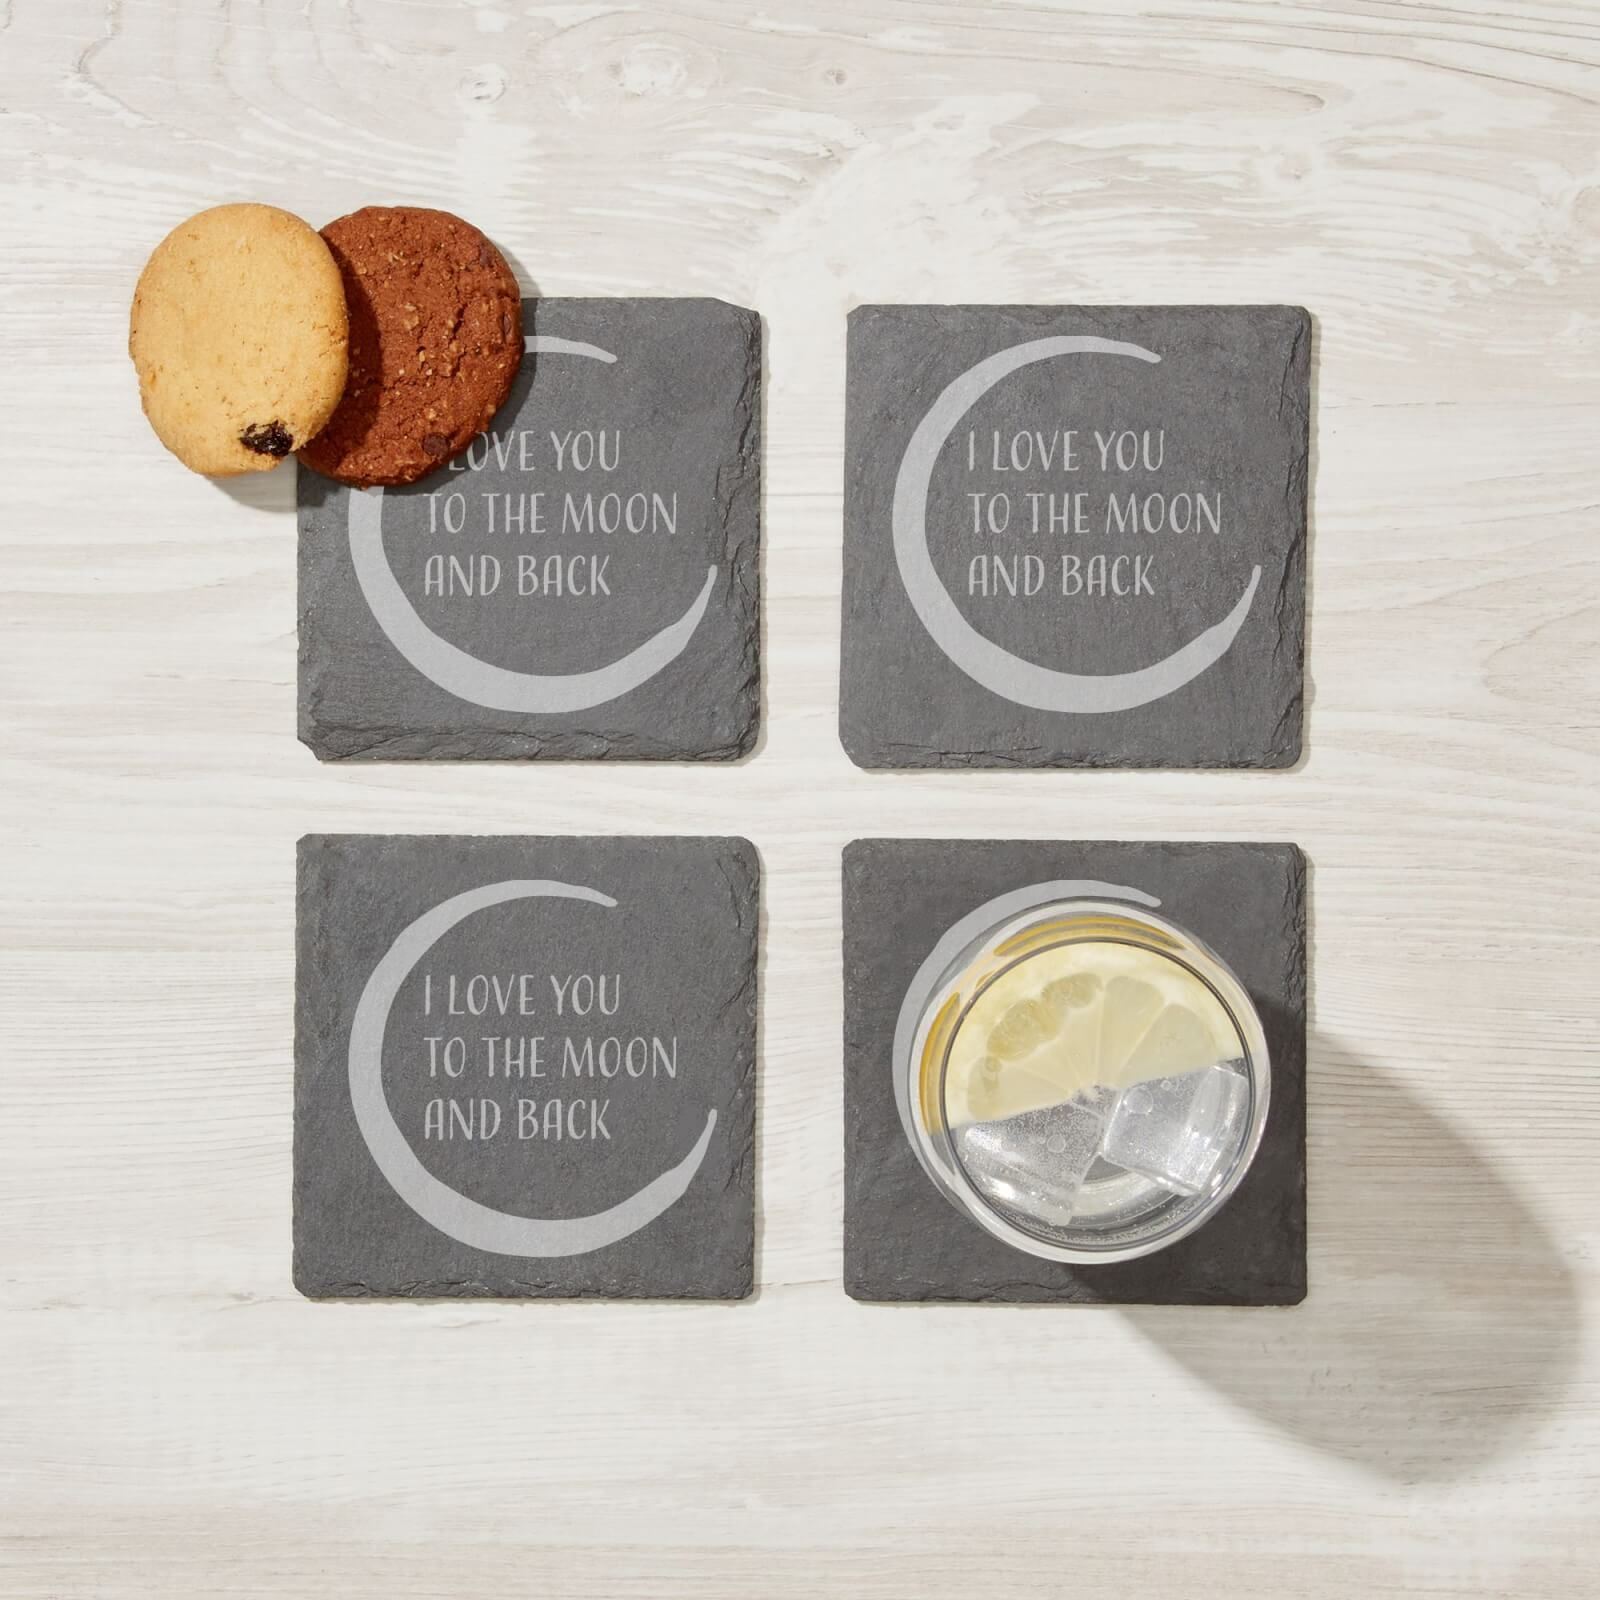 Add classic, rustic styling to your home with our incredible slate products. Designs range from cheeky, quirky and rude designs to inspiring art and slogans, so there is sure to be something for every home.These engraved slate coasters come in a pack of four with an intricate design. Dimensions: 10cm x 10cm. Weight: 134g